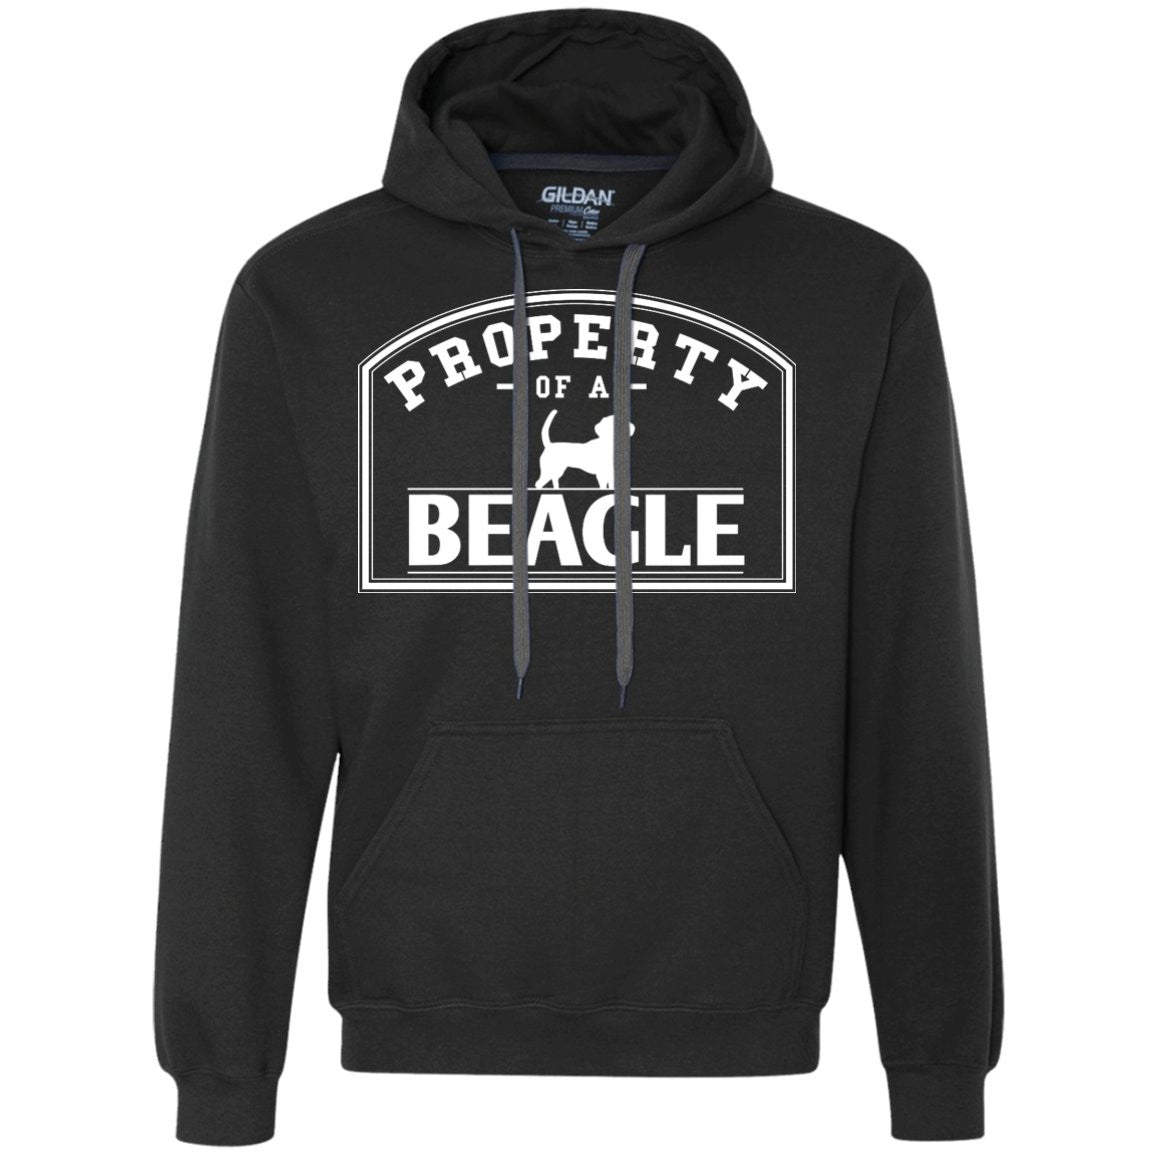 Beagle - Property Of A Beagle - Heavyweight Pullover Fleece Sweatshirt